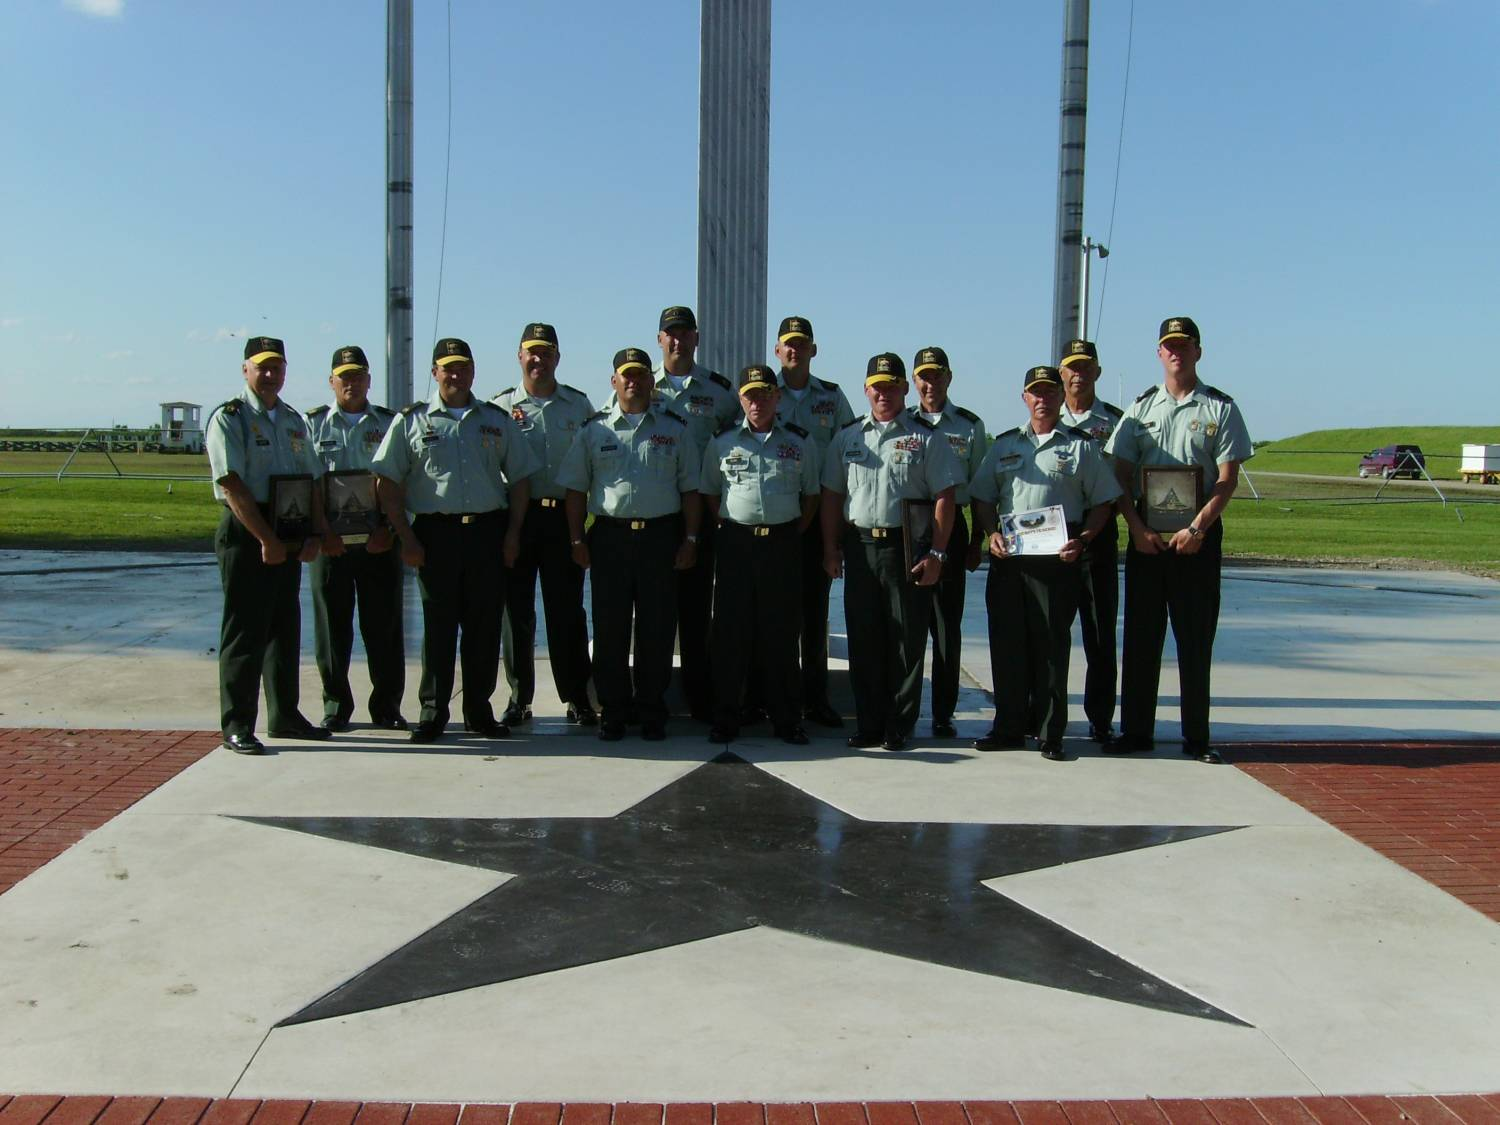 US Army Reserve Service Pistol Team at Camp Perry